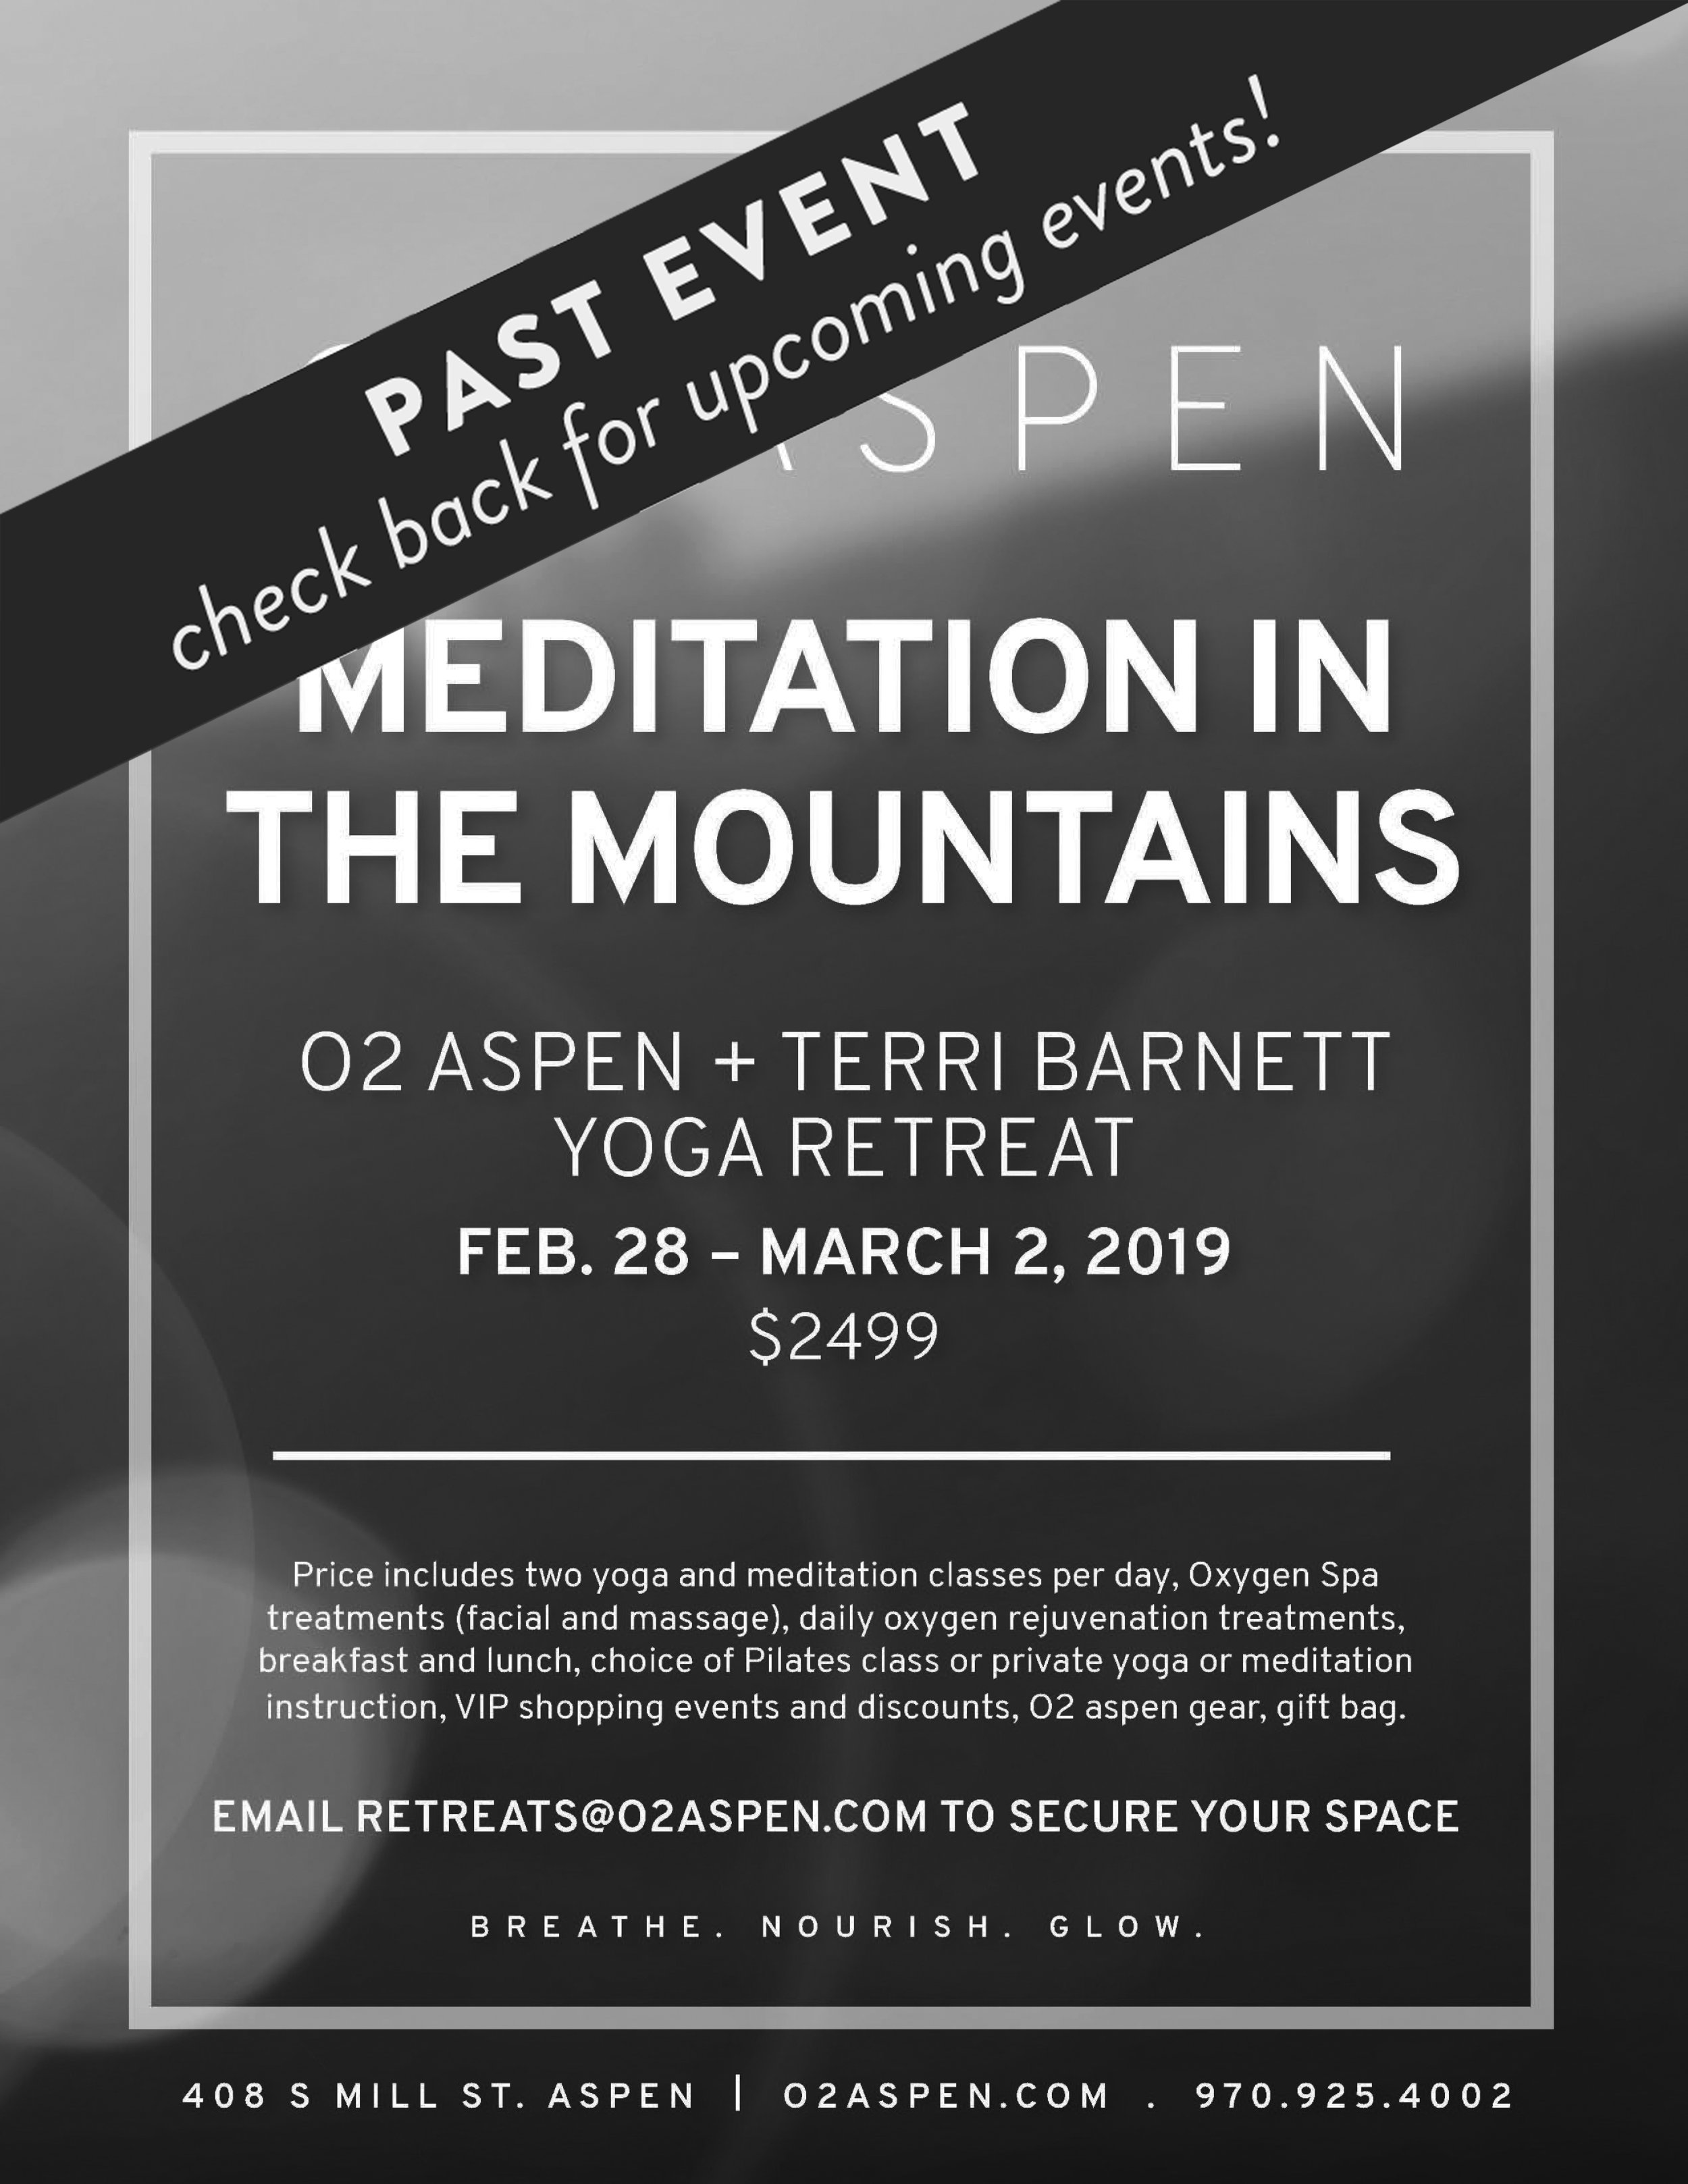 Aspen meditation + yoga retreat // Feb 28 - Mar 2 - Join Terri at O2 in Aspen for some much needed mid-winter wellness! You will enjoy two yoga and meditation classes per day, Oxygen Spa treatments (facial and massage), daily oxygen rejuvenation treatments, breakfast and lunch, choice of Pilates class or private yoga or meditation instruction, VIP shopping events and discounts, O2 aspen gear and a gift bag! Email retreats@O2Aspen.com to secure your space today, and feel free to contact Terri with any questions.